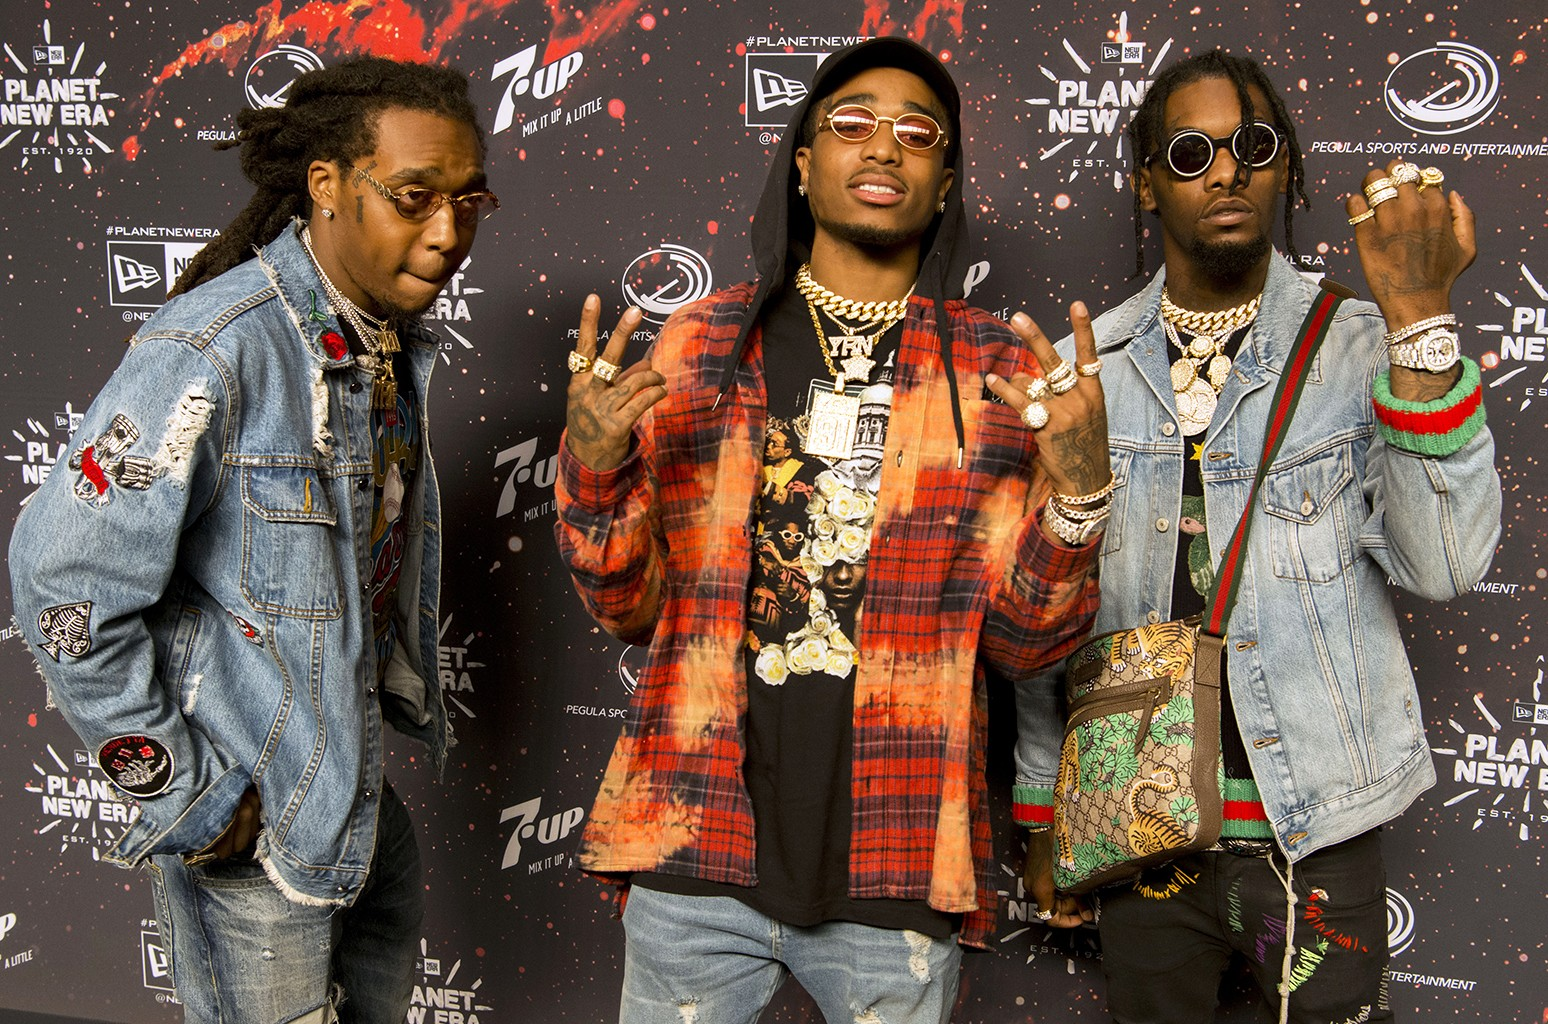 Migos attend New Era's Super Bowl party on Feb. 3, 2017 in Houston.